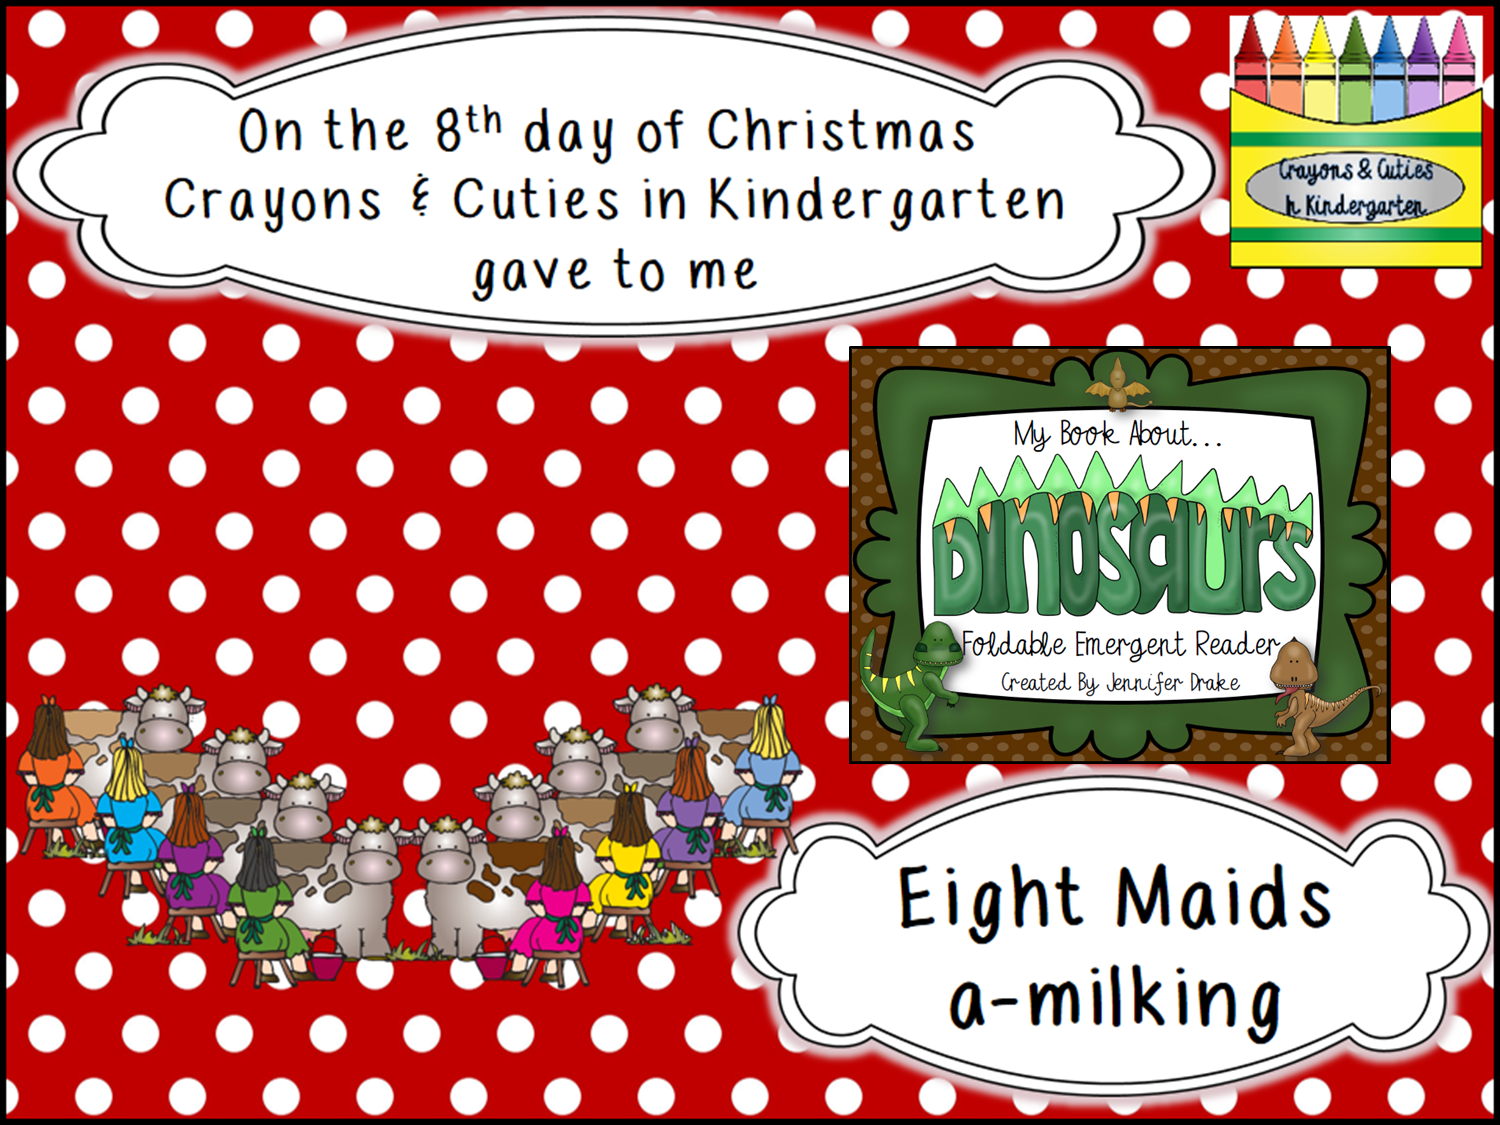 Crayons & Cuties In Kindergarten: On the 8th Day of Christmas....